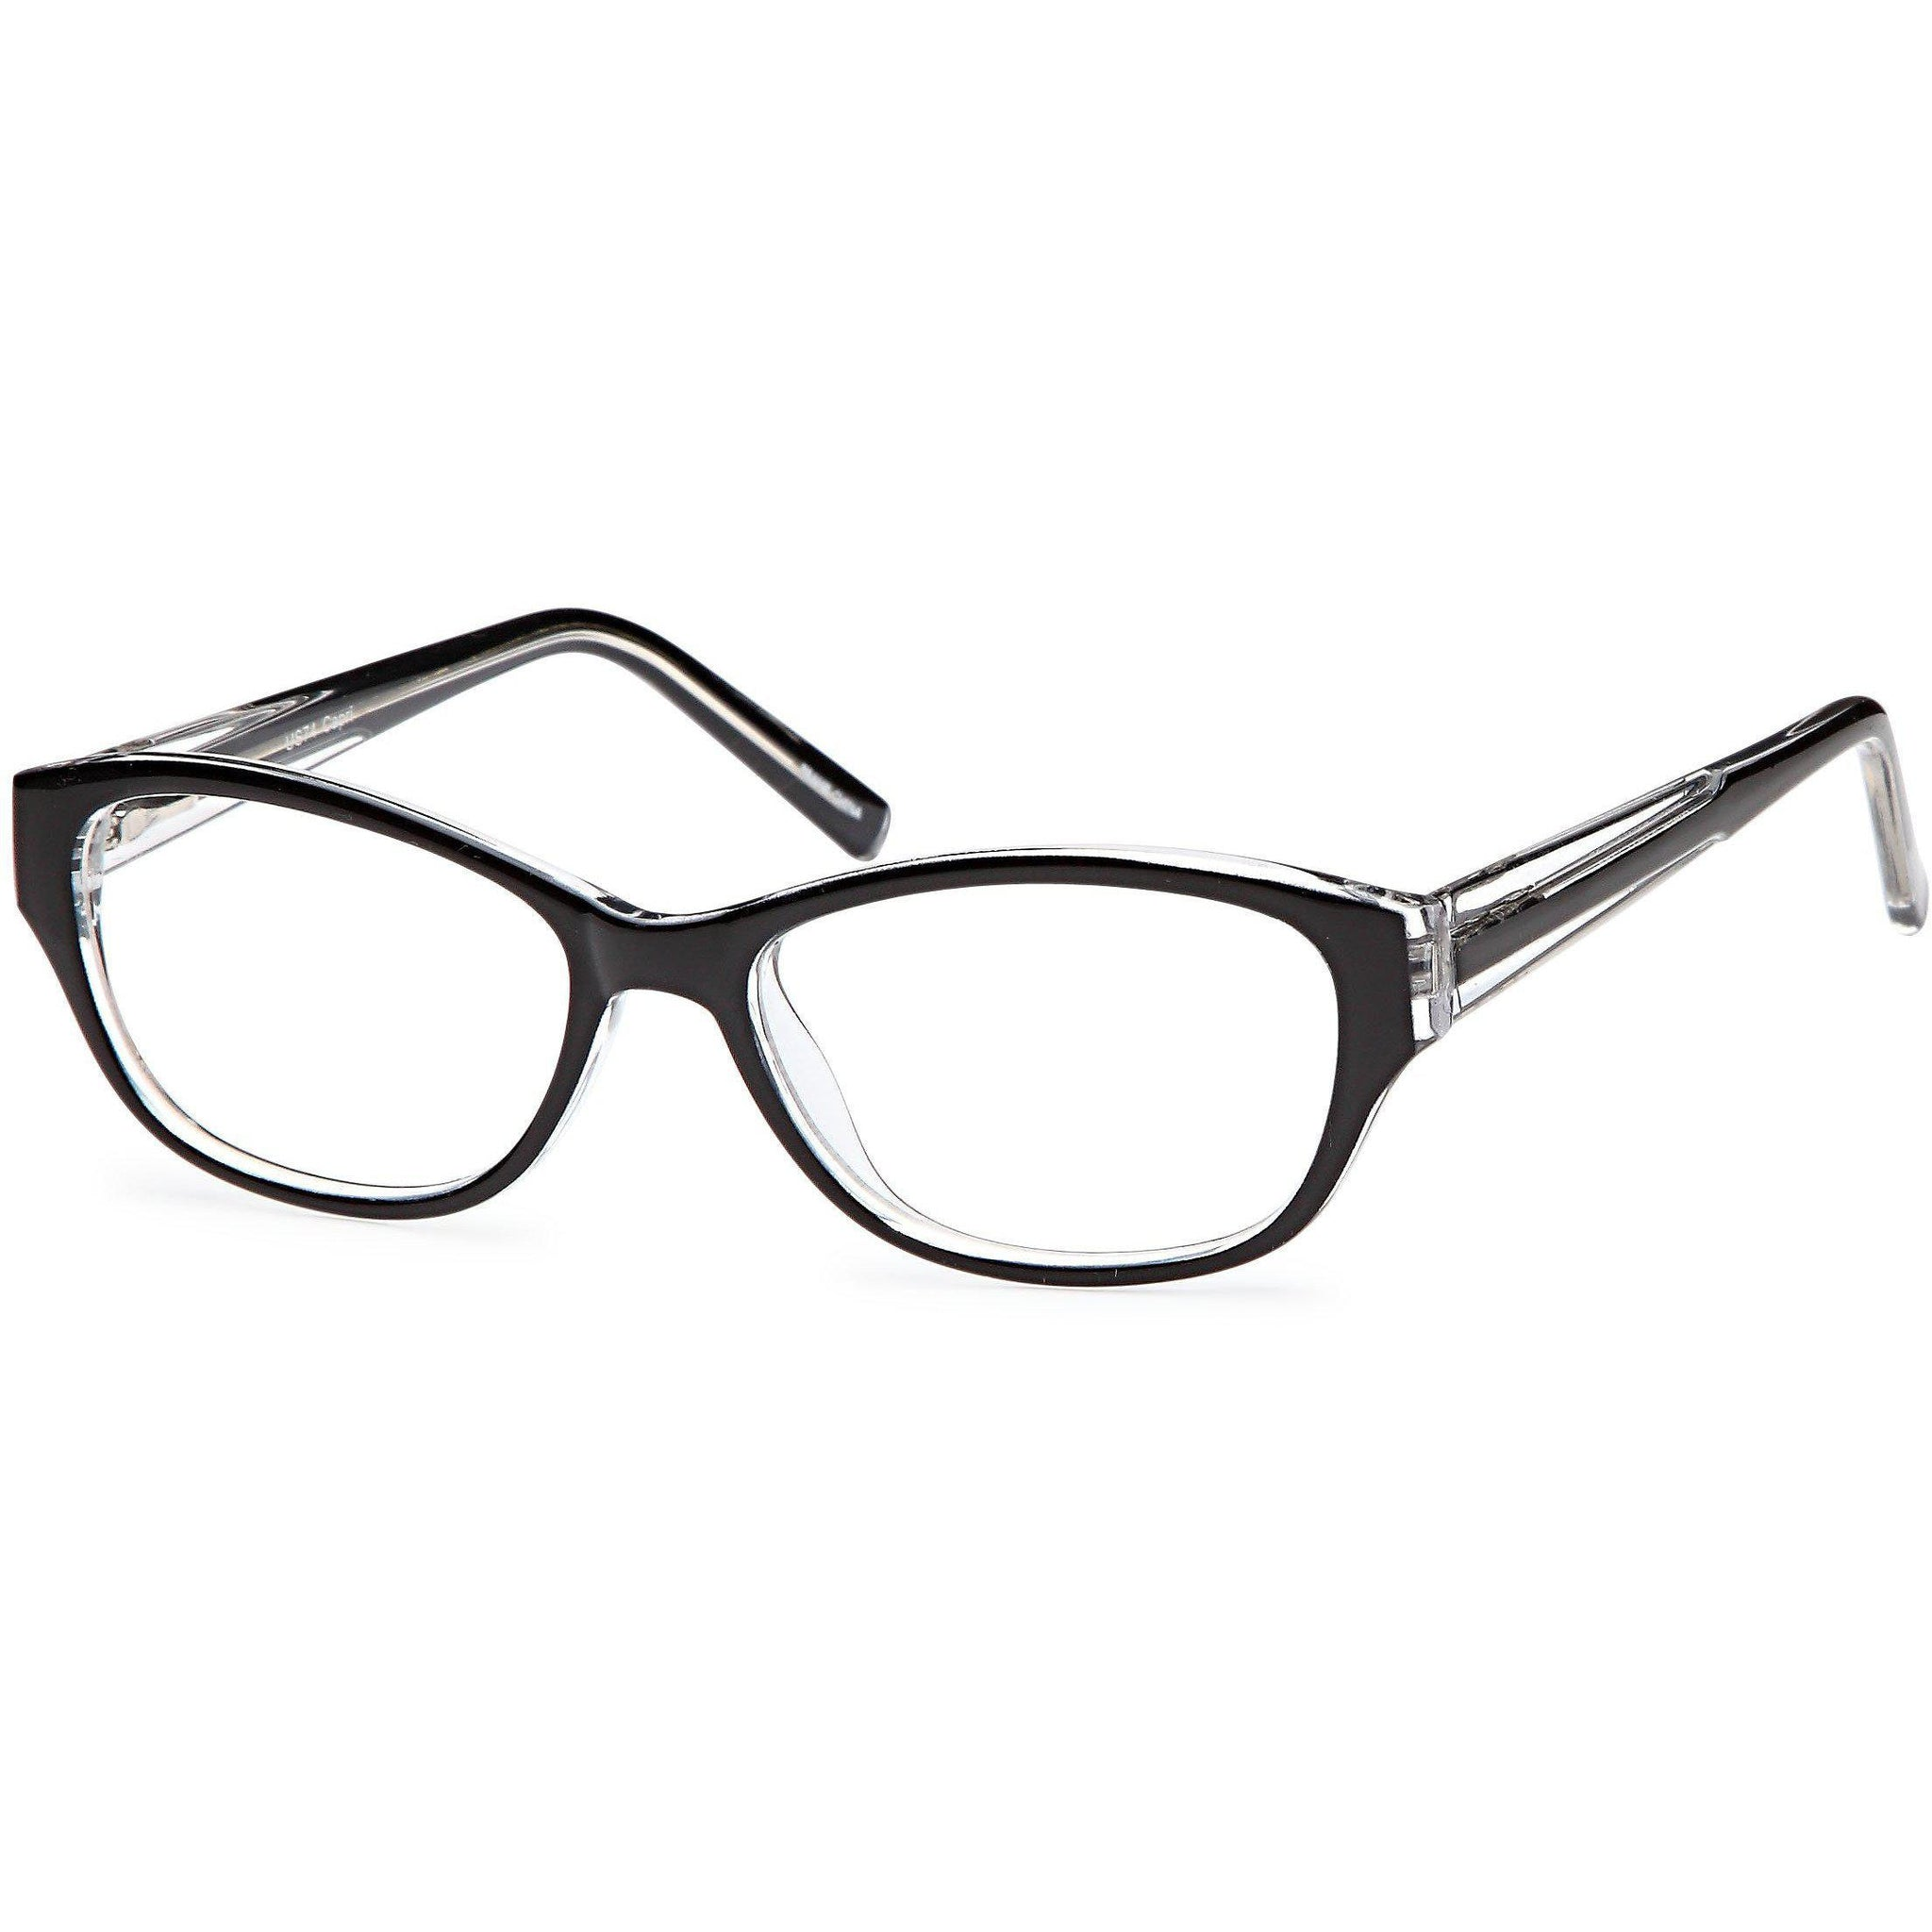 4U Prescription Glasses US 74 Optical Eyeglasses Frame - timetoshade